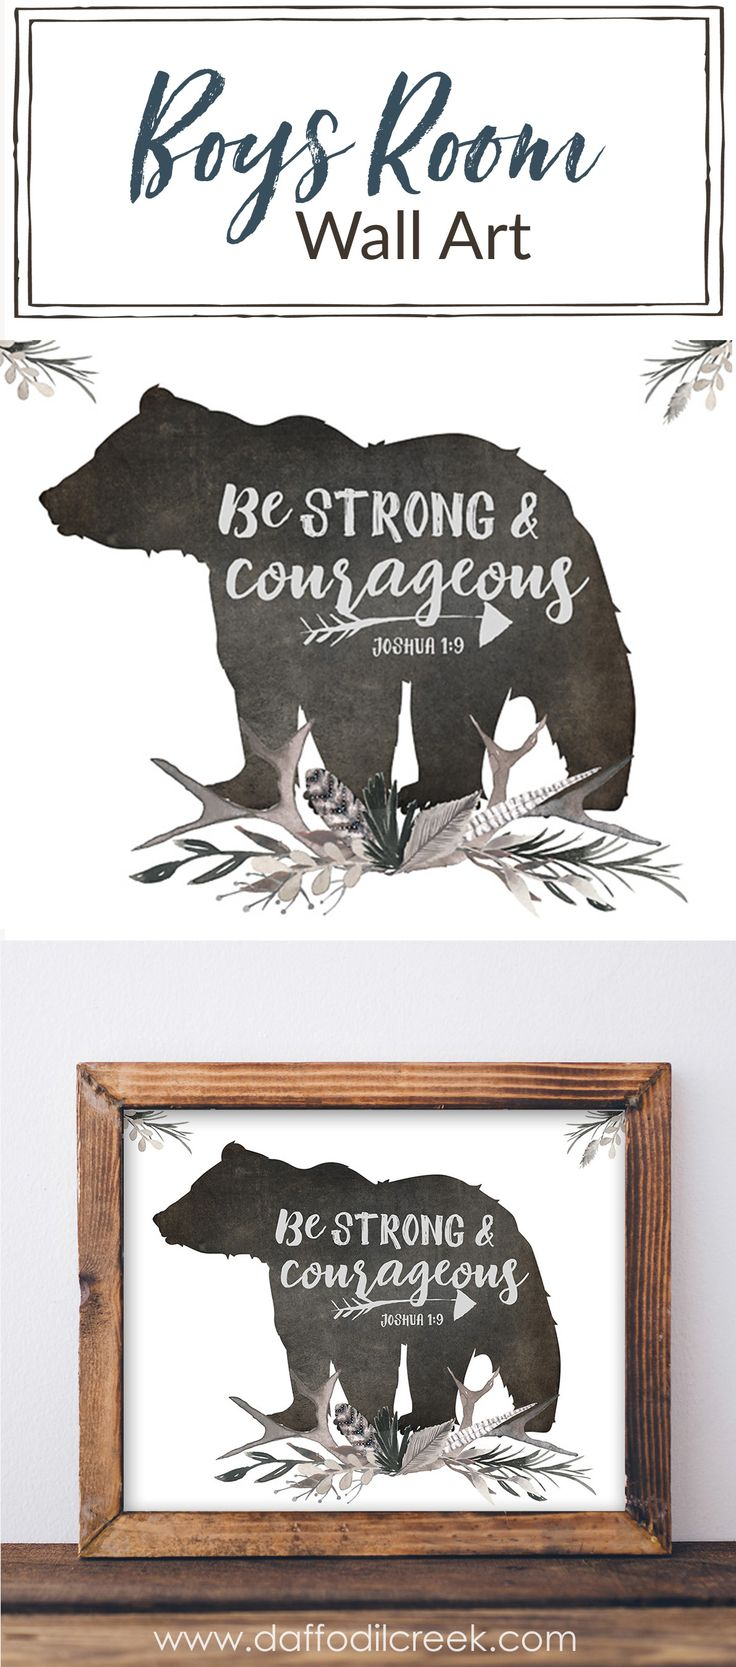 "Be Strong and Courageous Lettered Print - Add some encouragement to your little boy's walls with this woodland scripture print! A portion of Joshua 1:9 ""Be strong and courageous"" is paired with a bear silhouette and masculine watercolor greenery in gray tones. Perfect for a boys room or nursery!"